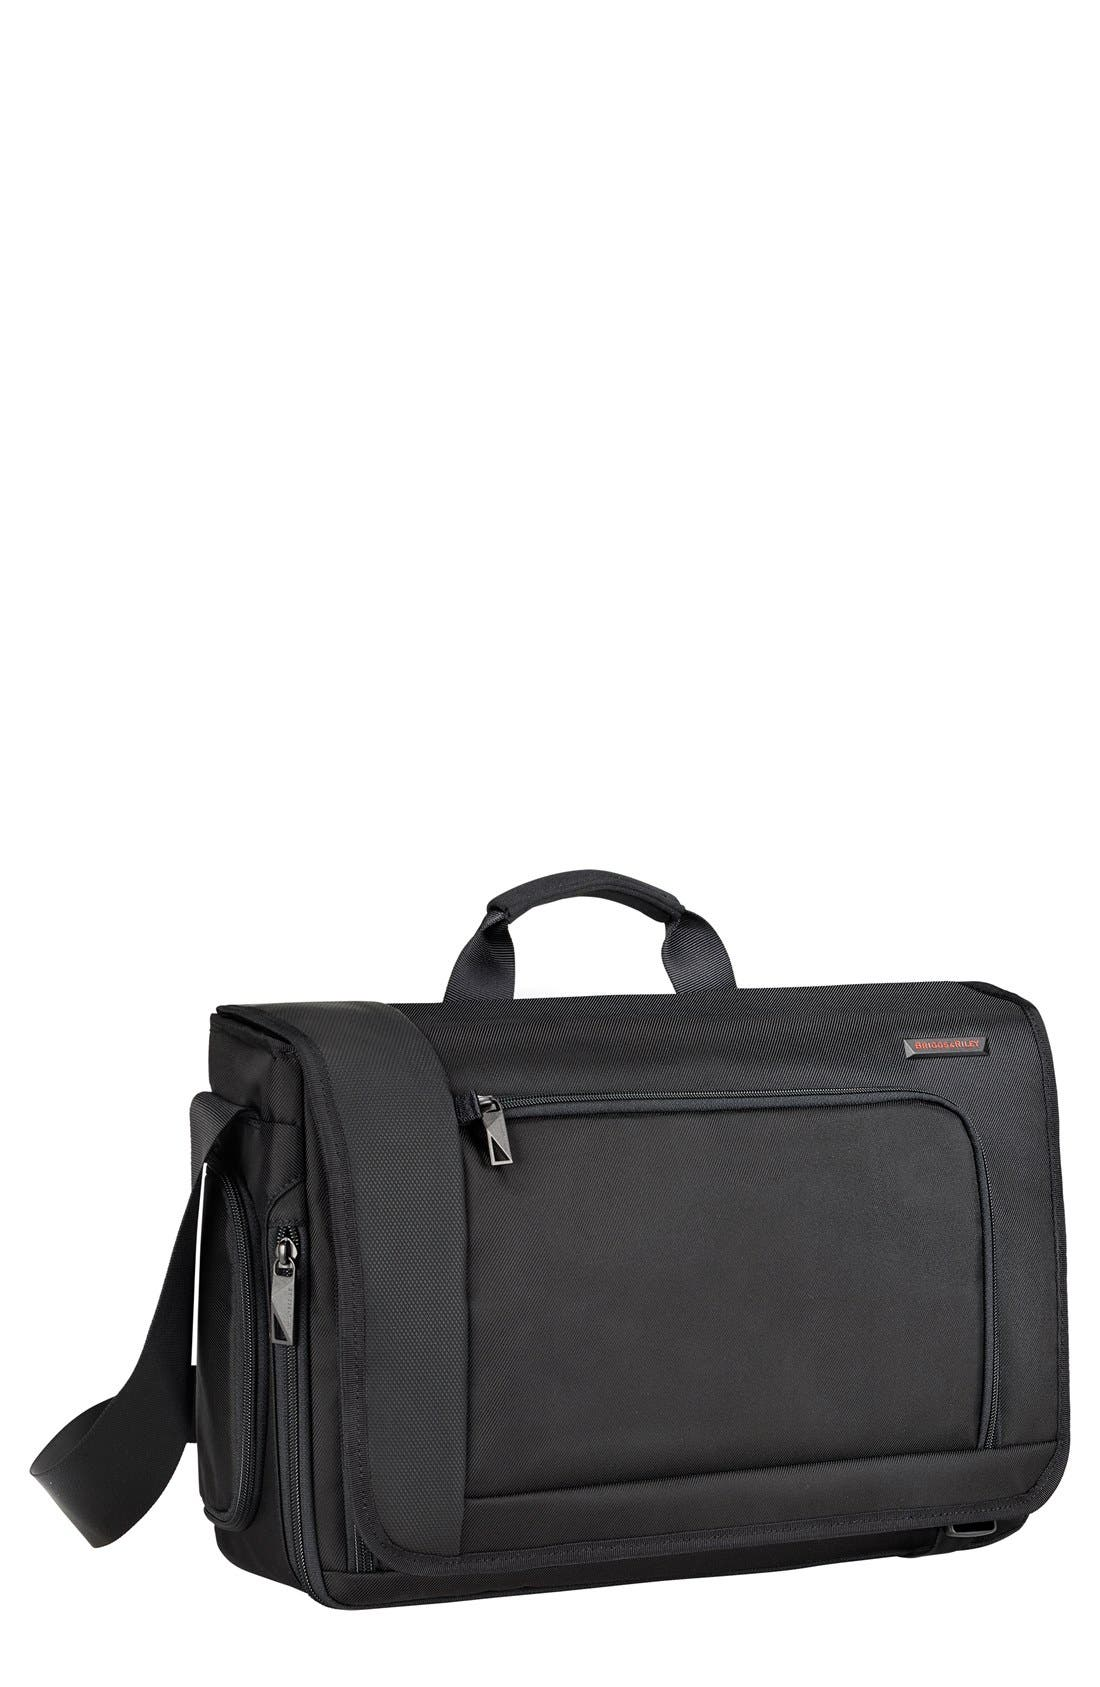 BRIGGS & RILEY 'Verb - Dispatch' Messenger Bag